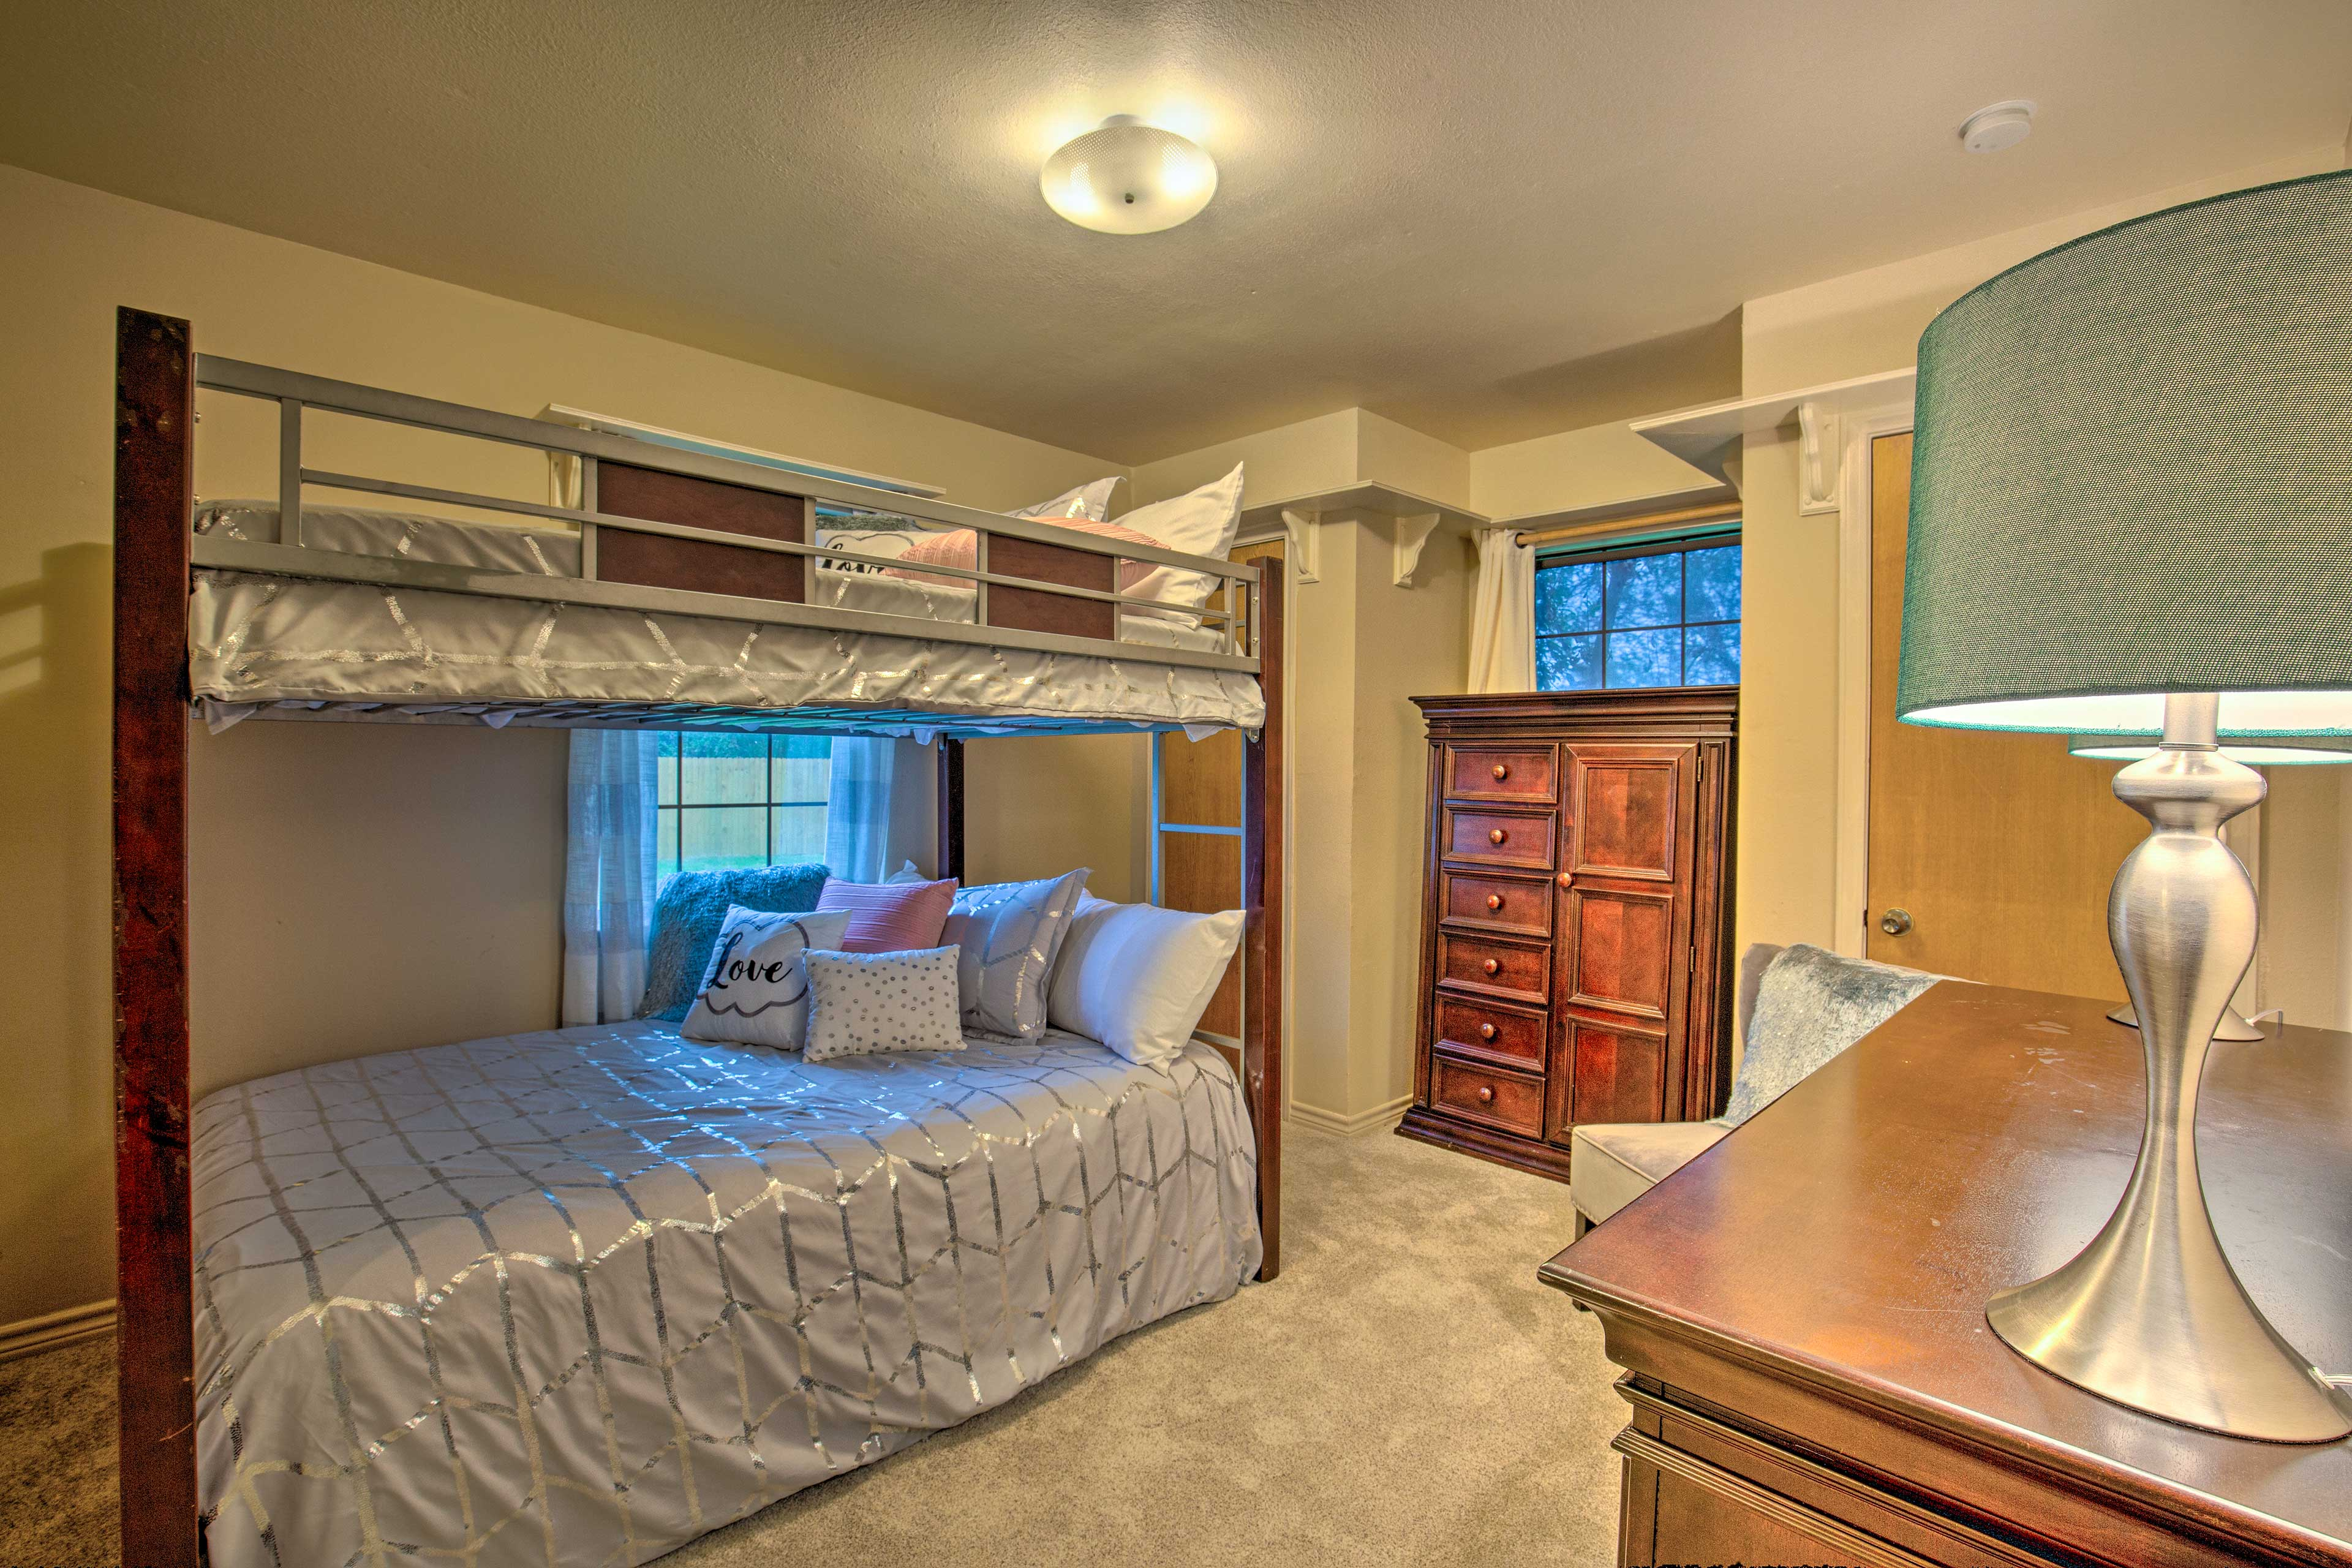 The kids can share the full bunk bed.